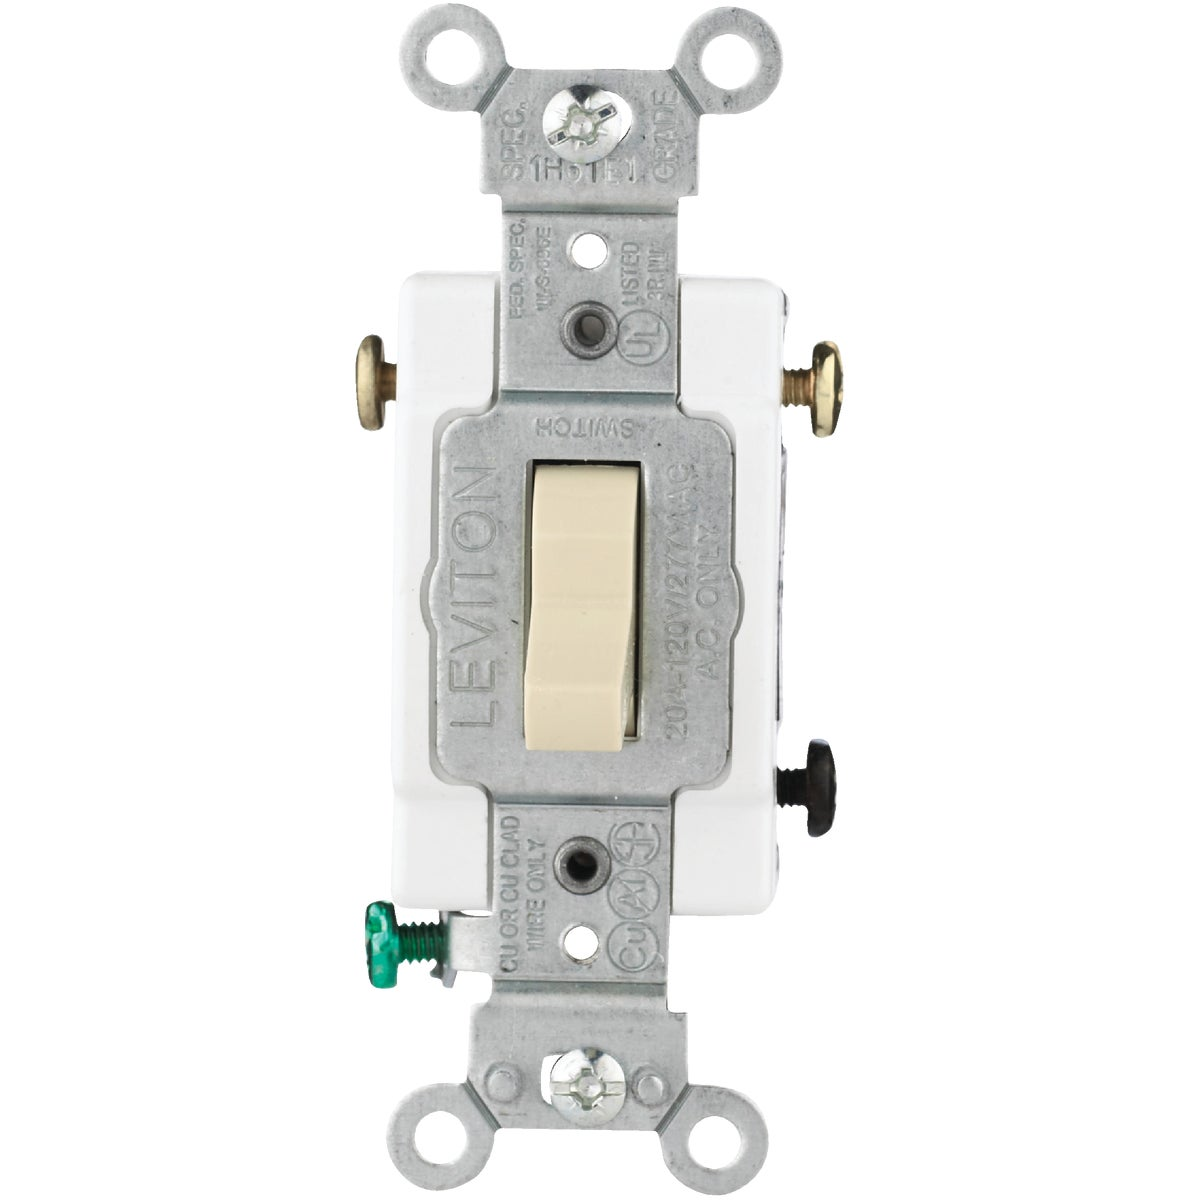 IV 3-WAY GRND SWITCH - S03-CS320-2IS by Leviton Mfg Co